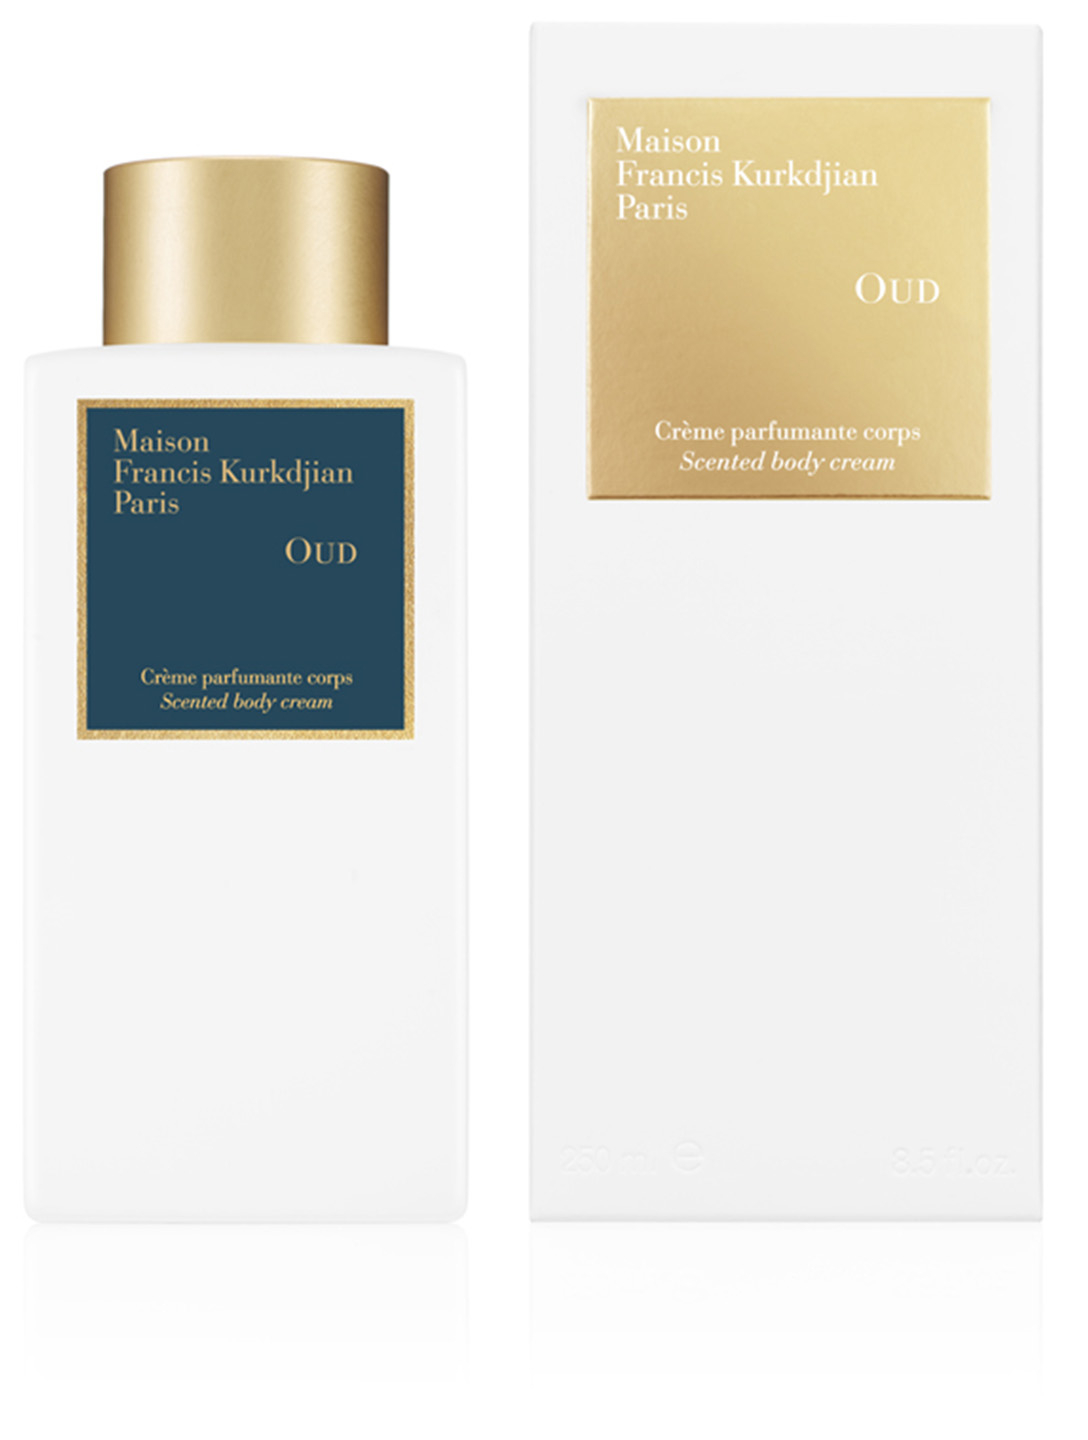 MAISON FRANCIS KURKDJIAN Oud Scented Body Cream Beauty